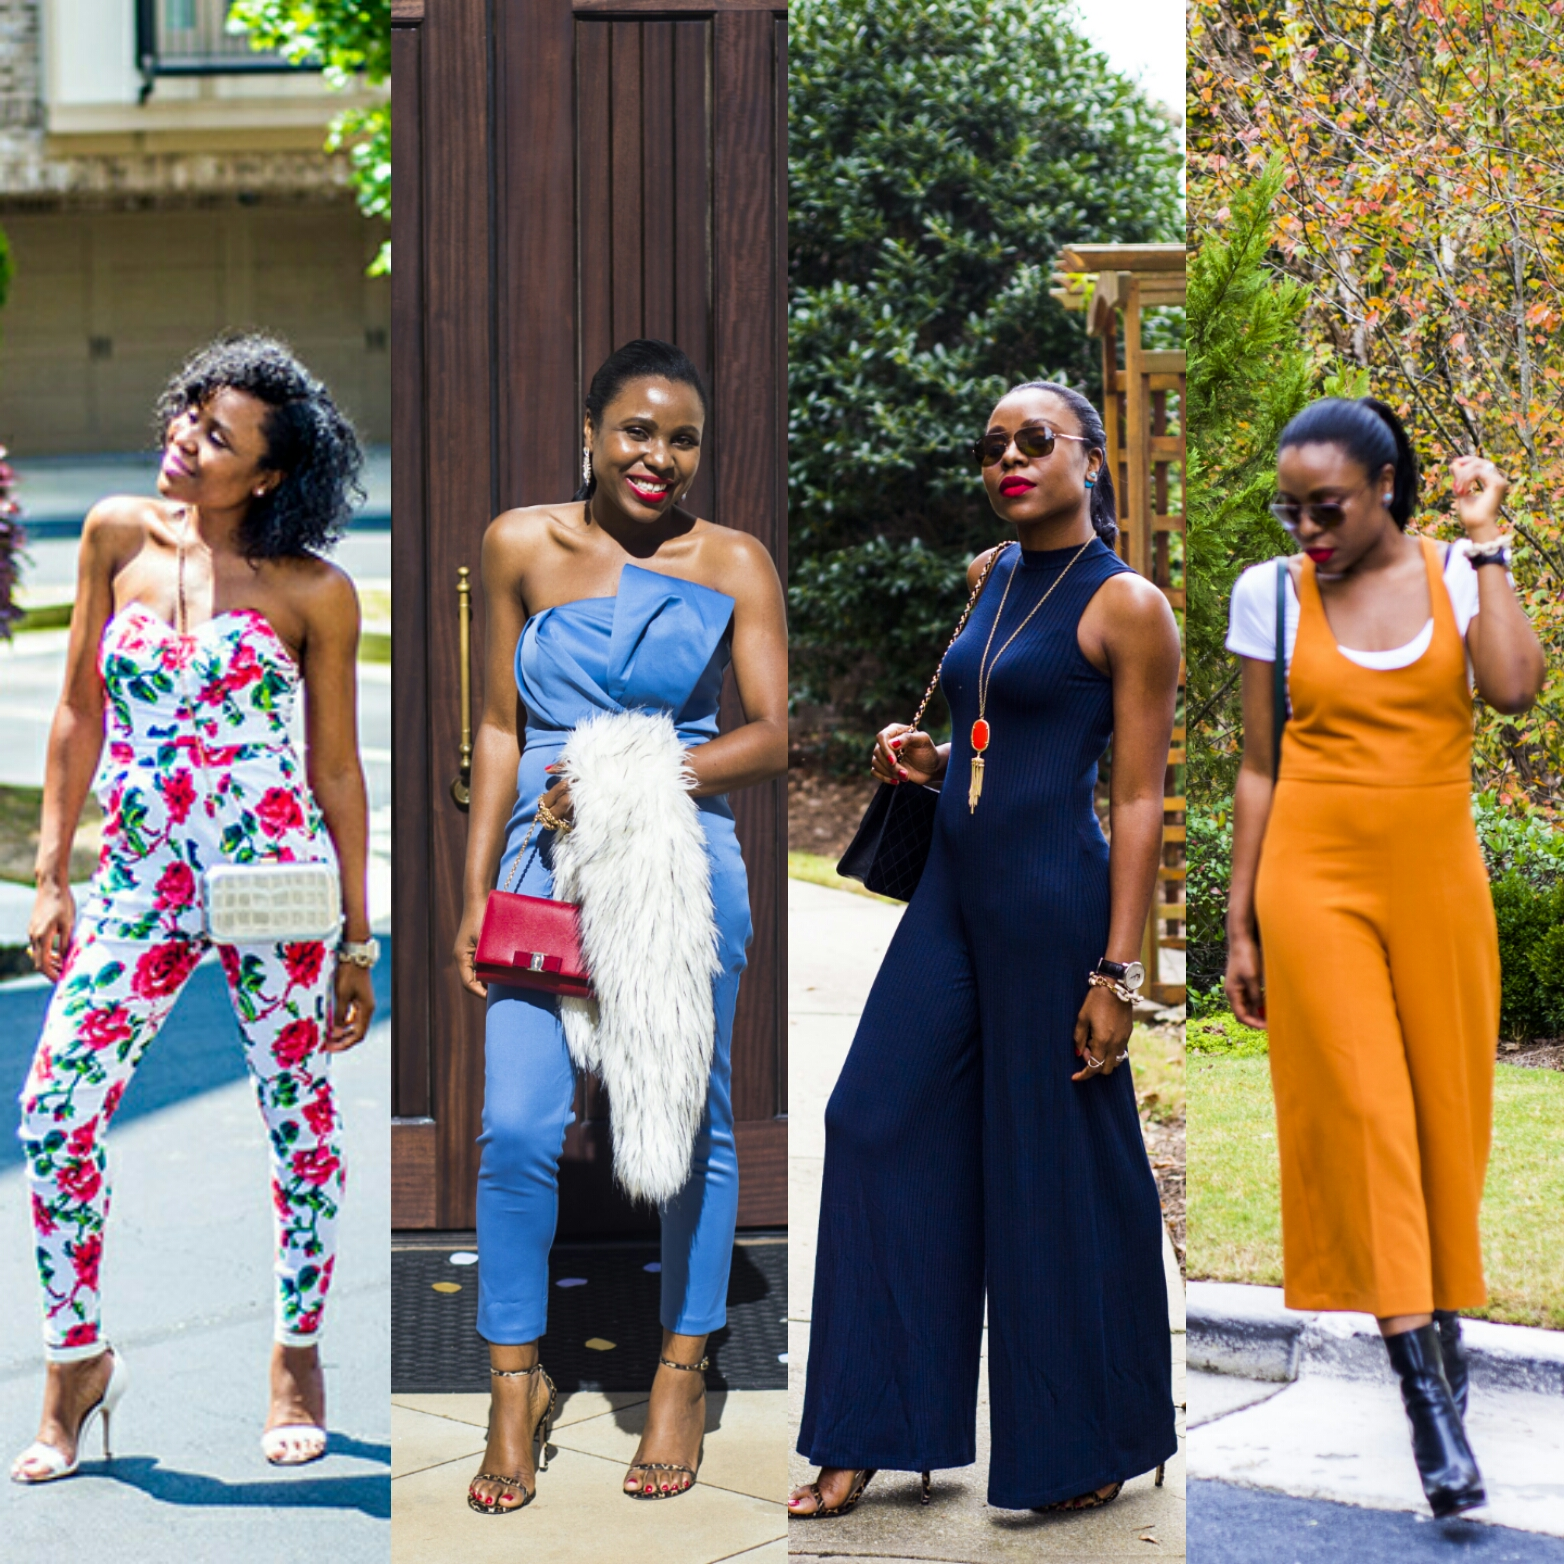 Fashion Countdown: The Jumpsuit